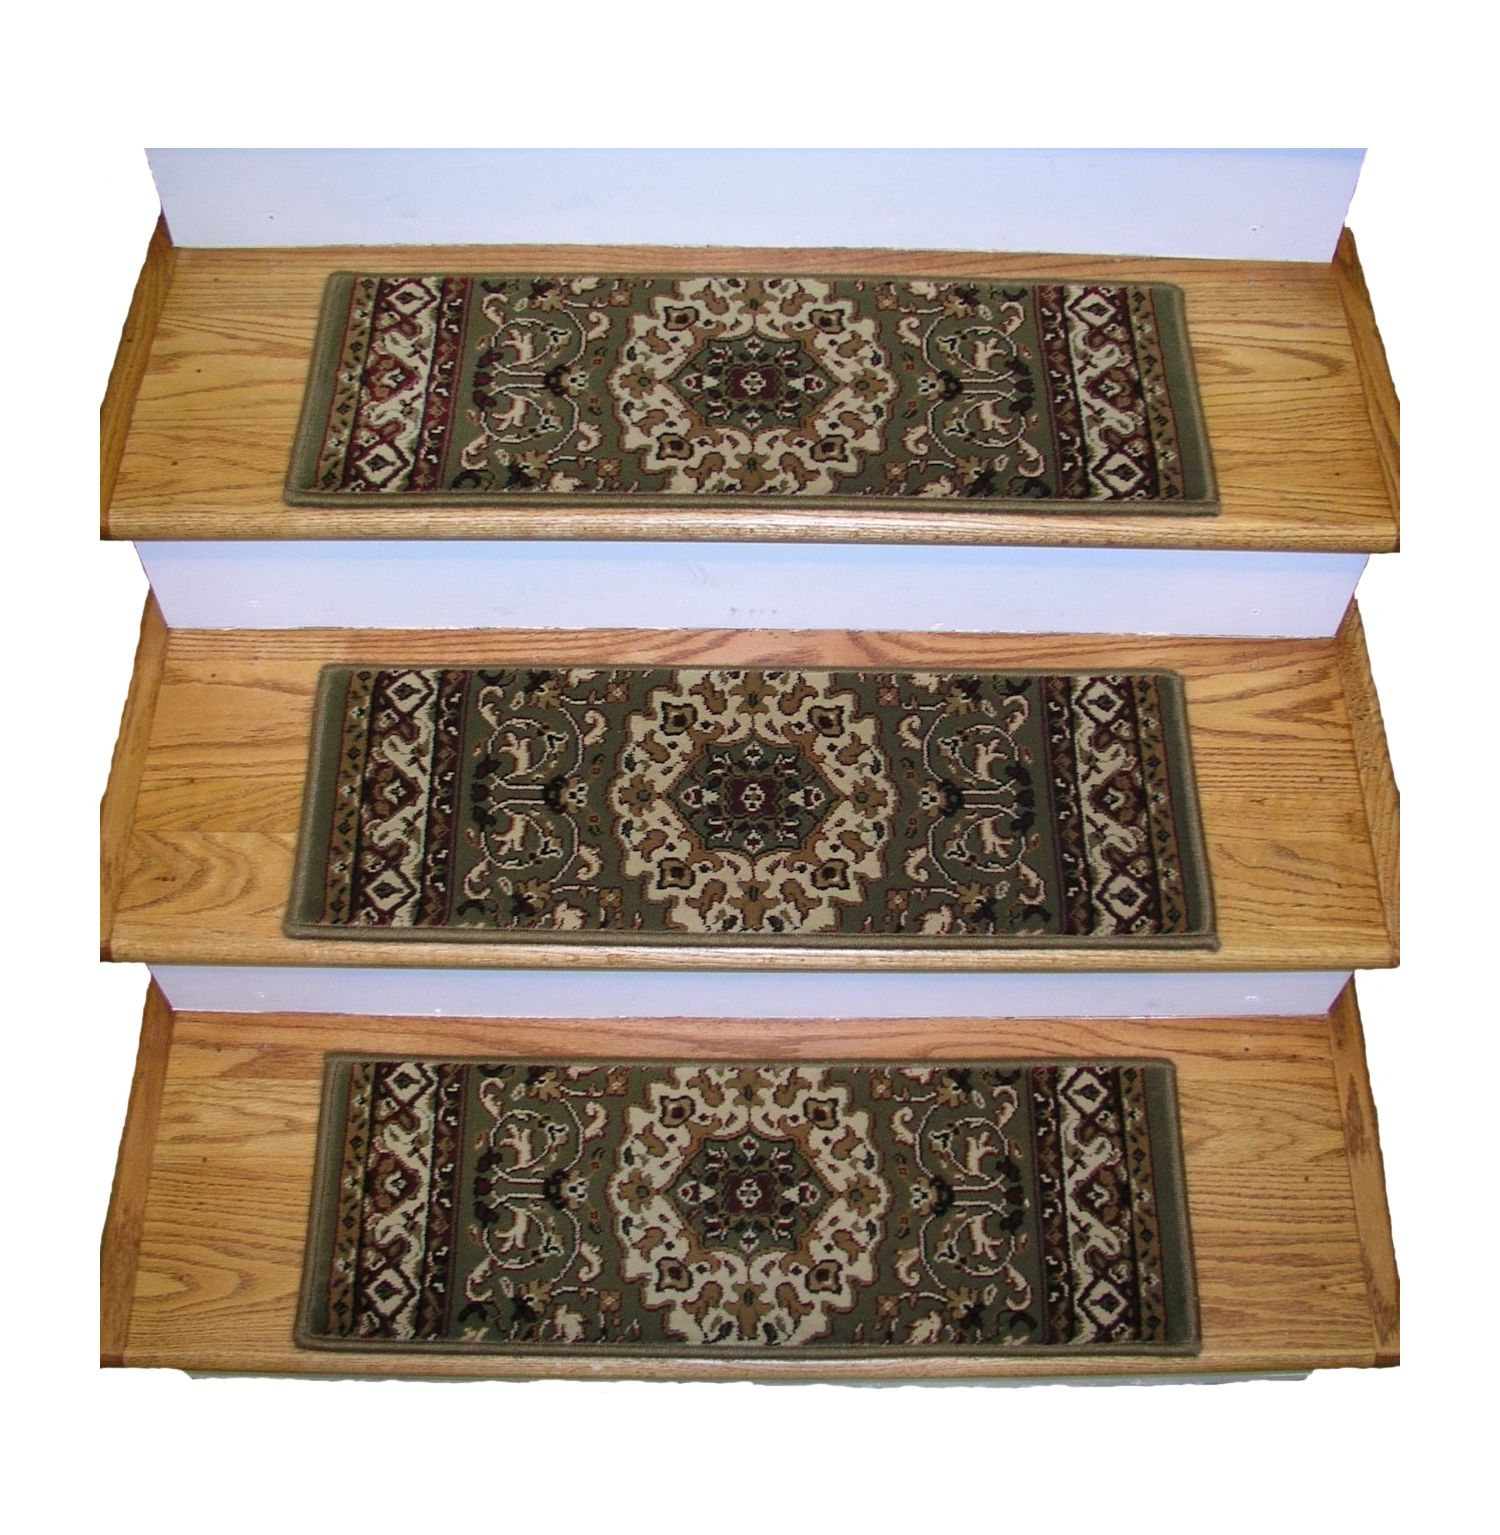 Flooring Pretty Stair Treads Carpet For Stair Decoration Idea Pertaining To Oriental Carpet Stair Treads (#5 of 20)